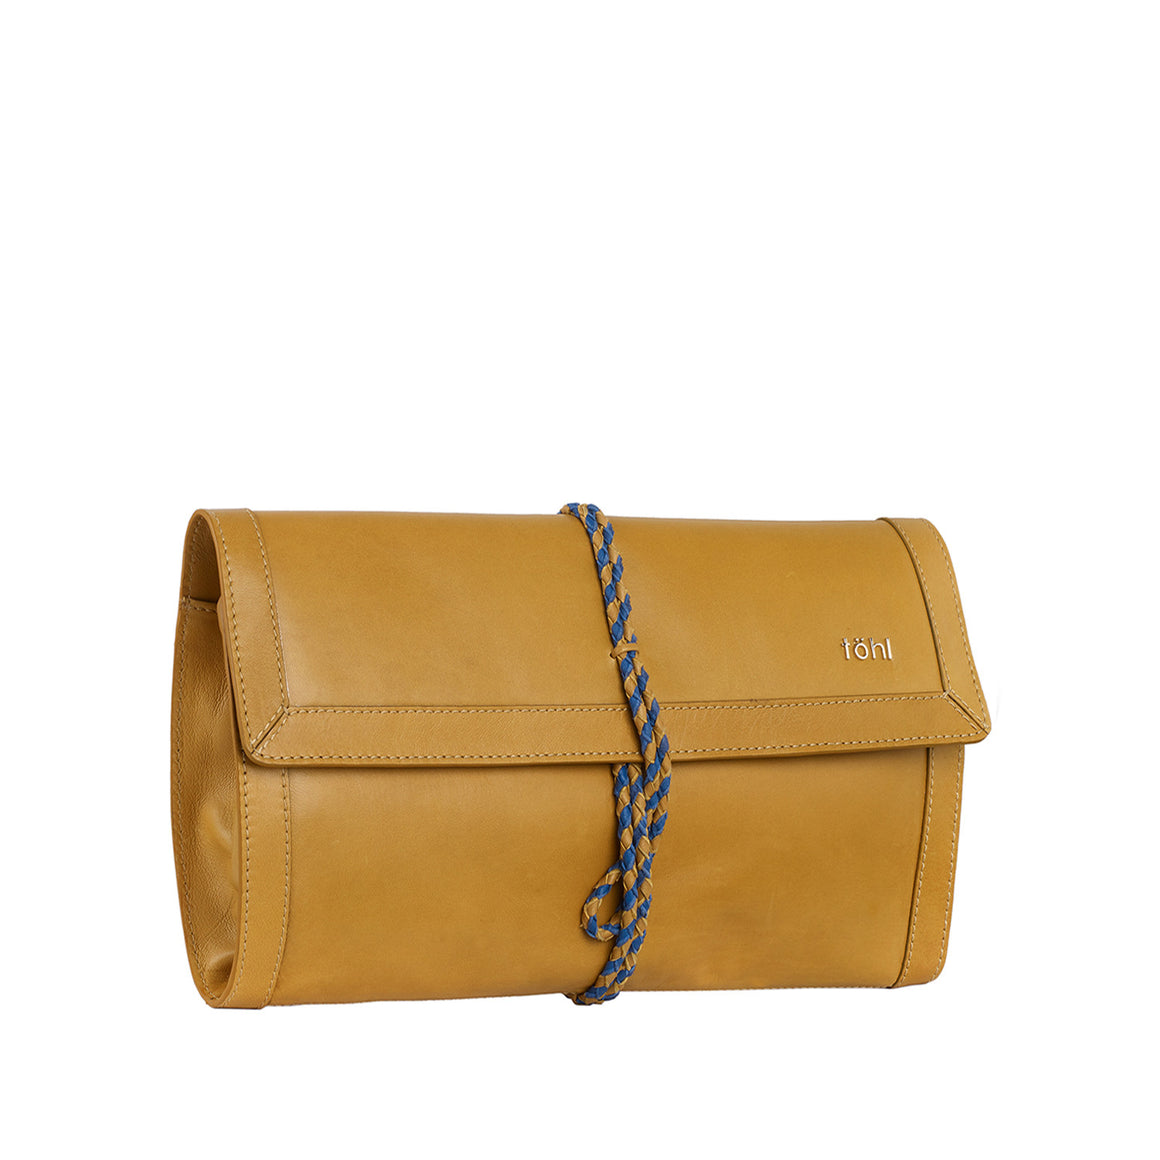 CH 0006 - TOHL CAMILLE WOMEN'S ROLLUP CLUTCH - SUN